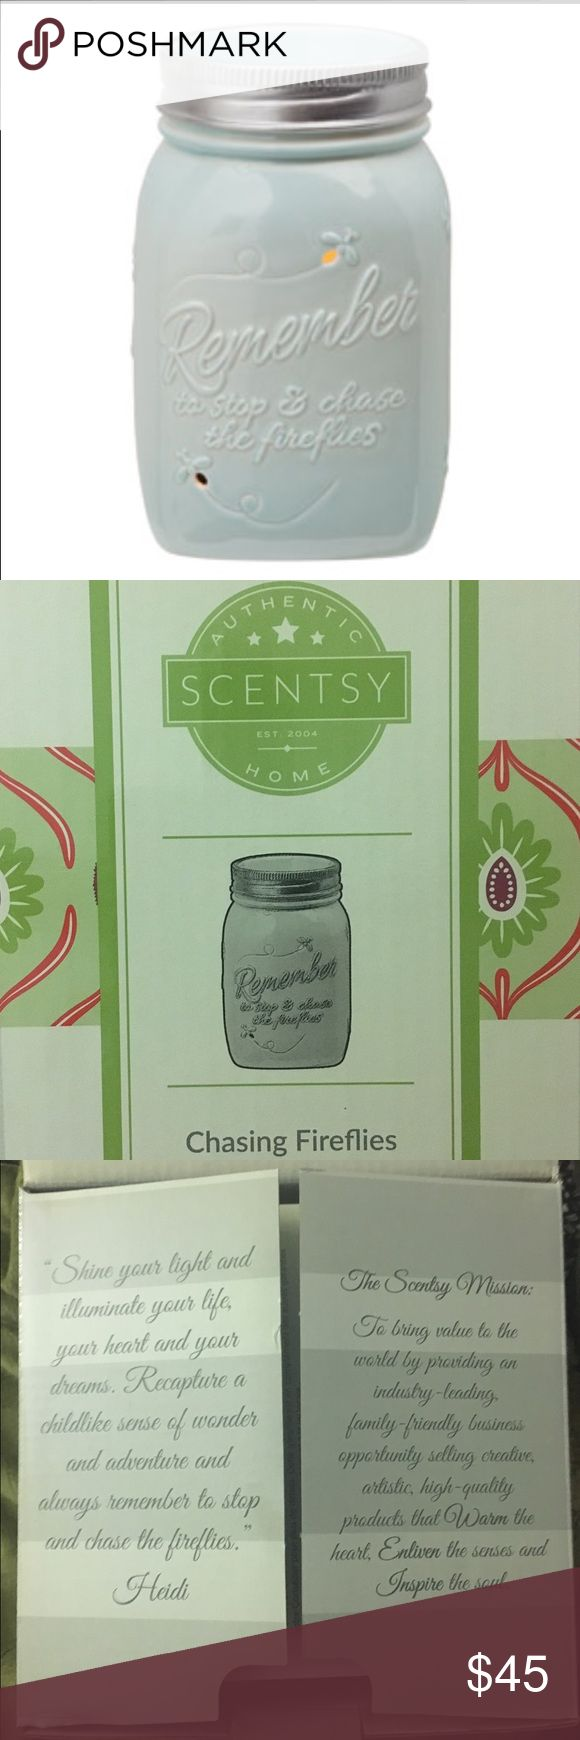 Scentsy Warmer Chasing Fireflies Mason Jar Blue Full Size Scentsy Warmer. Chasing Fireflies Mason Jar. New in box. OPEN TO OFFERS!!! Scentsy Other